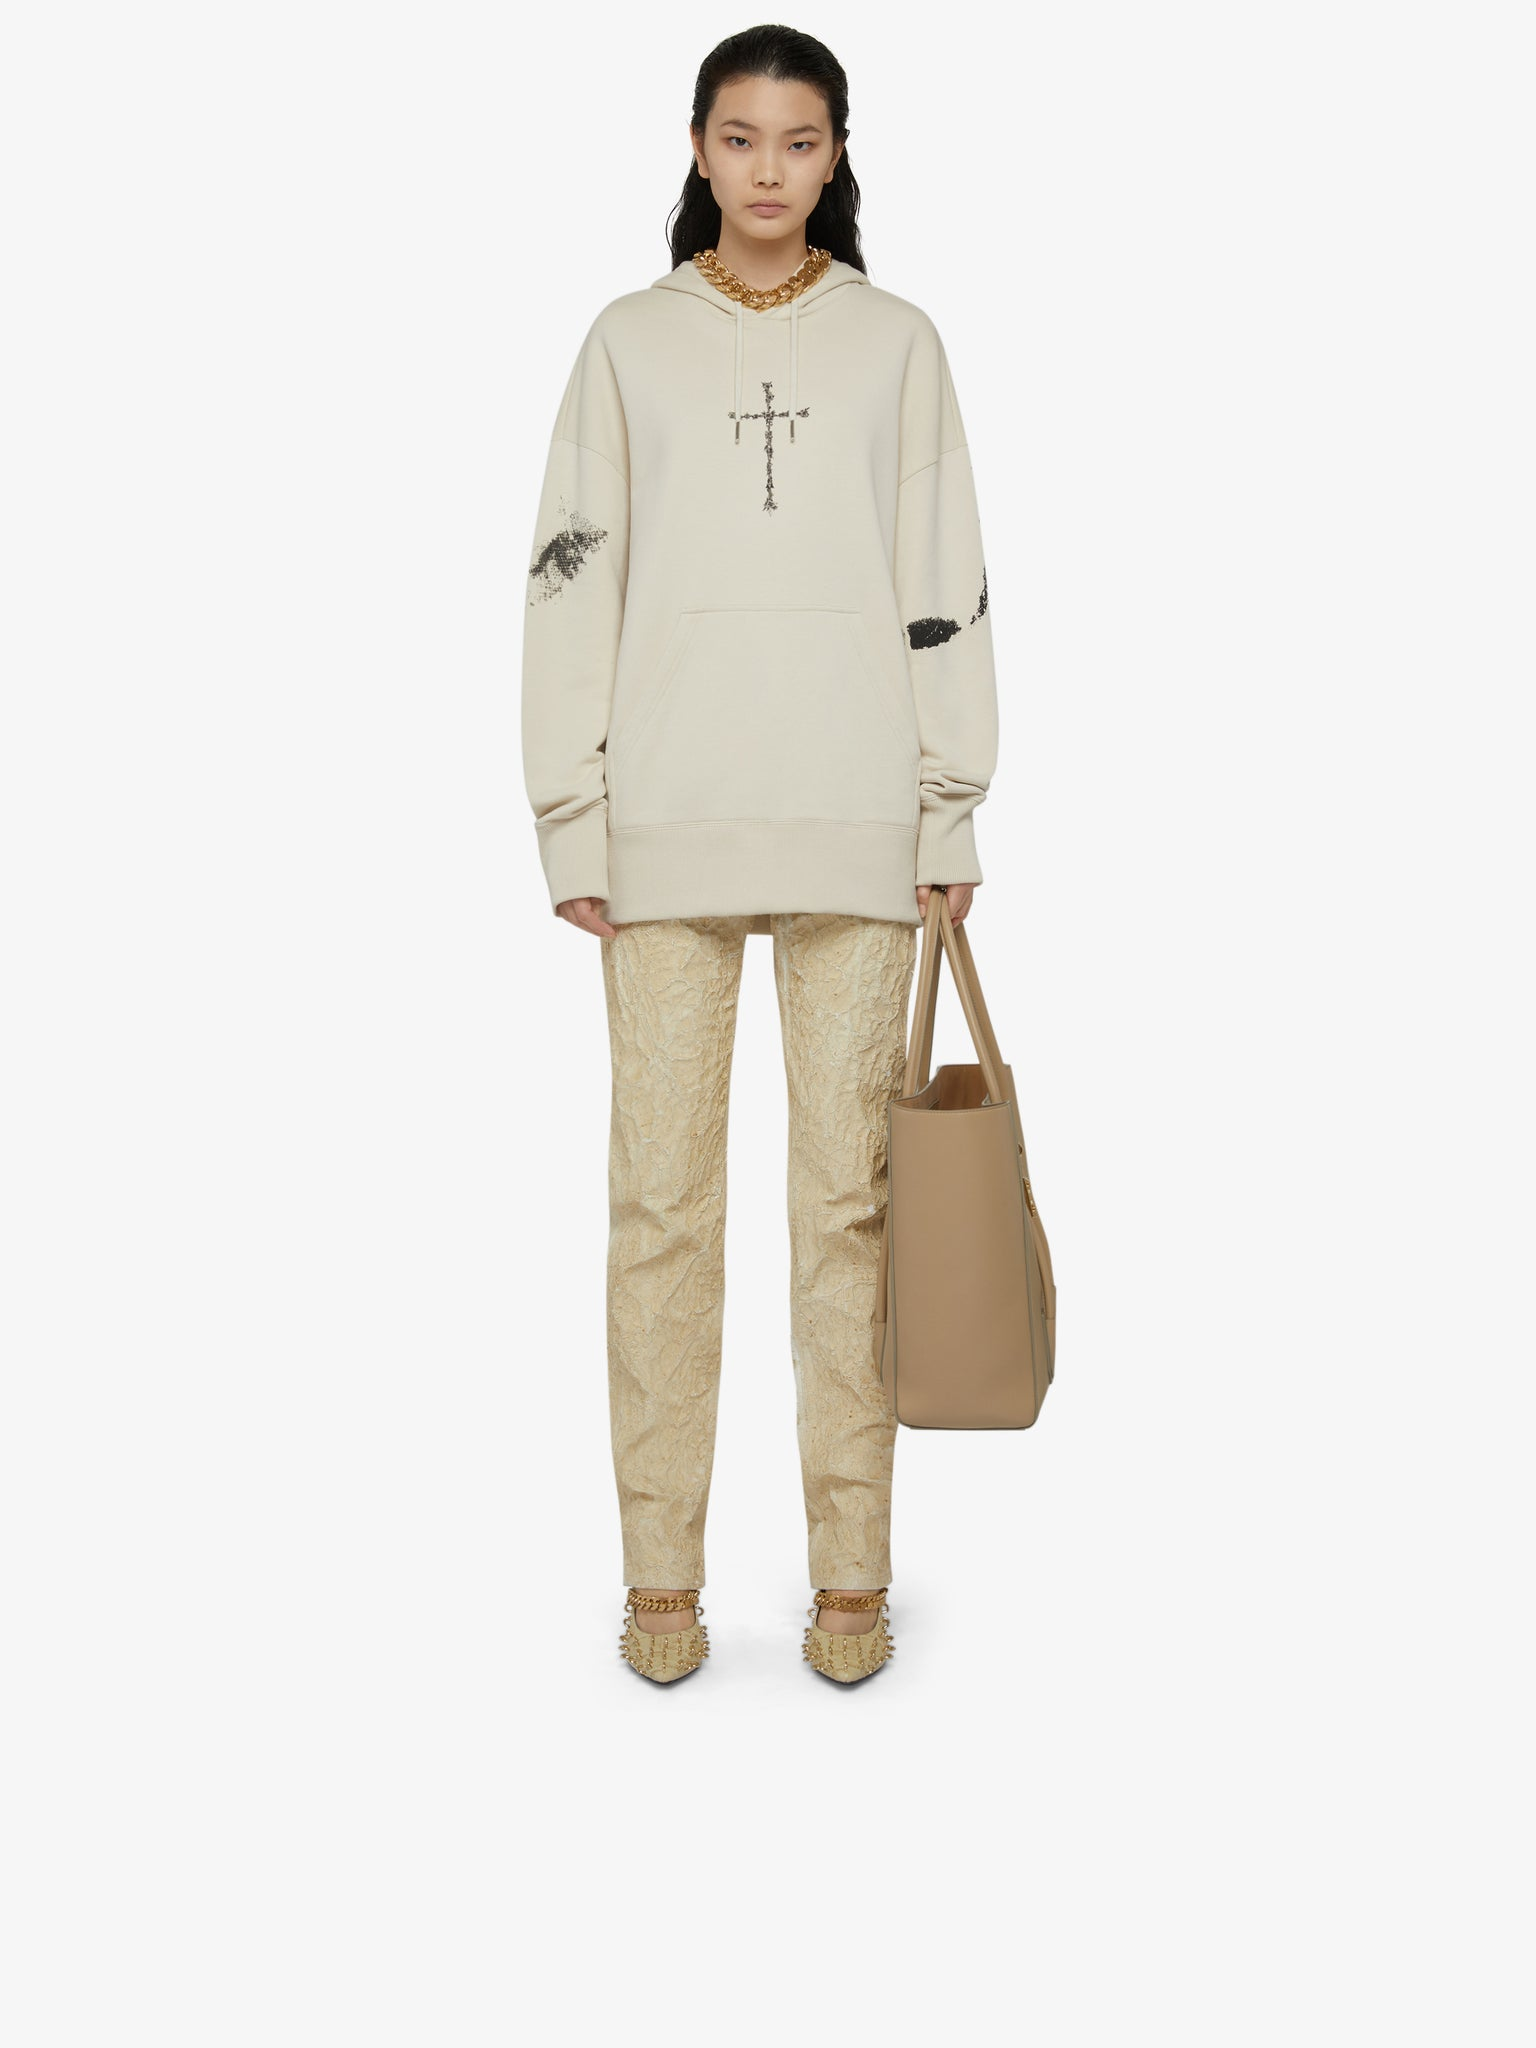 GIVENCHY | OVERSIZED GRAPHIC HOODIE